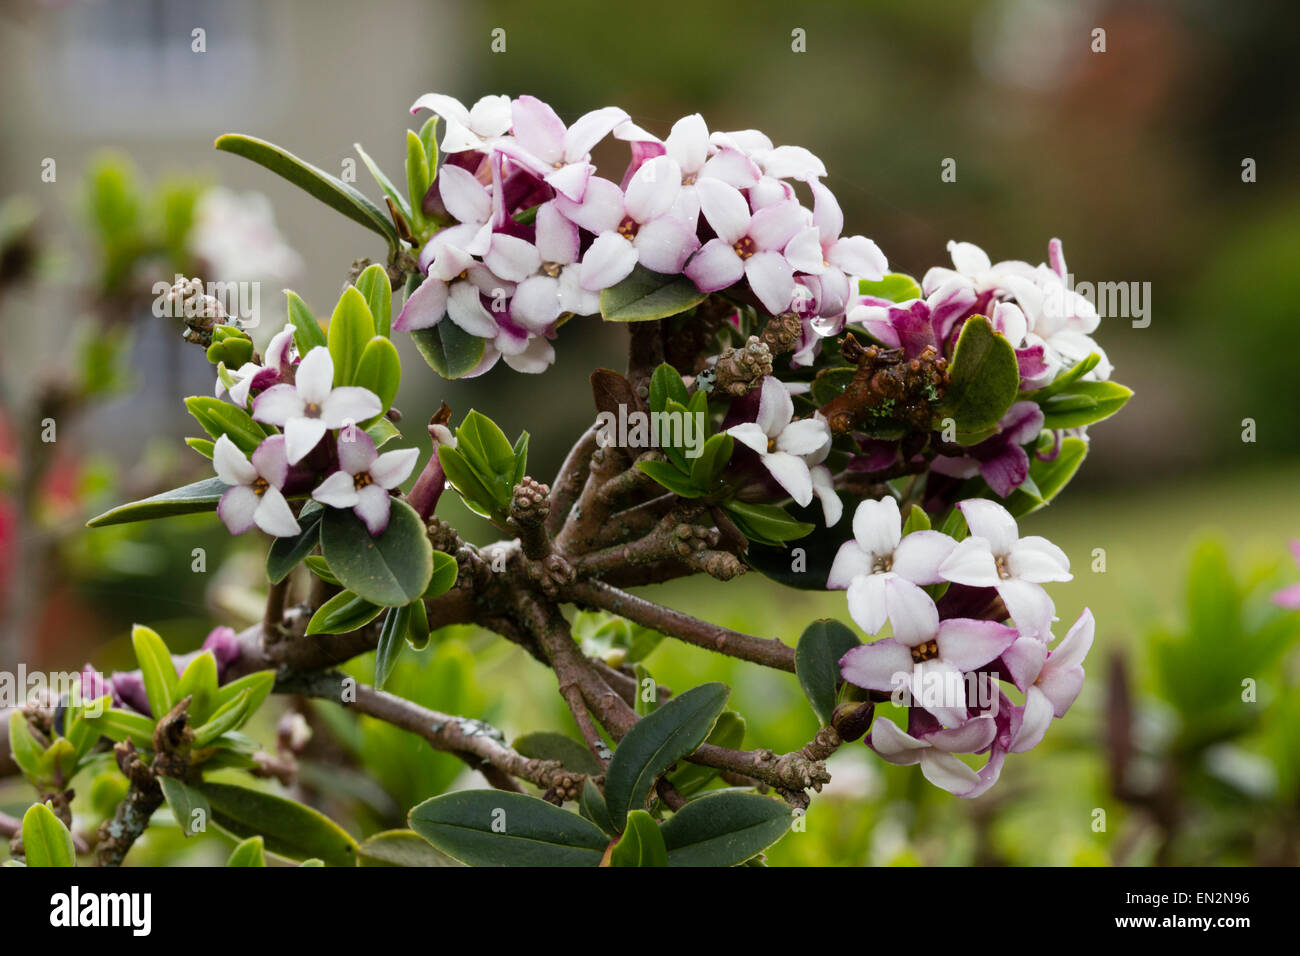 Scented spring flowers of the small evergreen shrub, Daphne tangutica - Stock Image